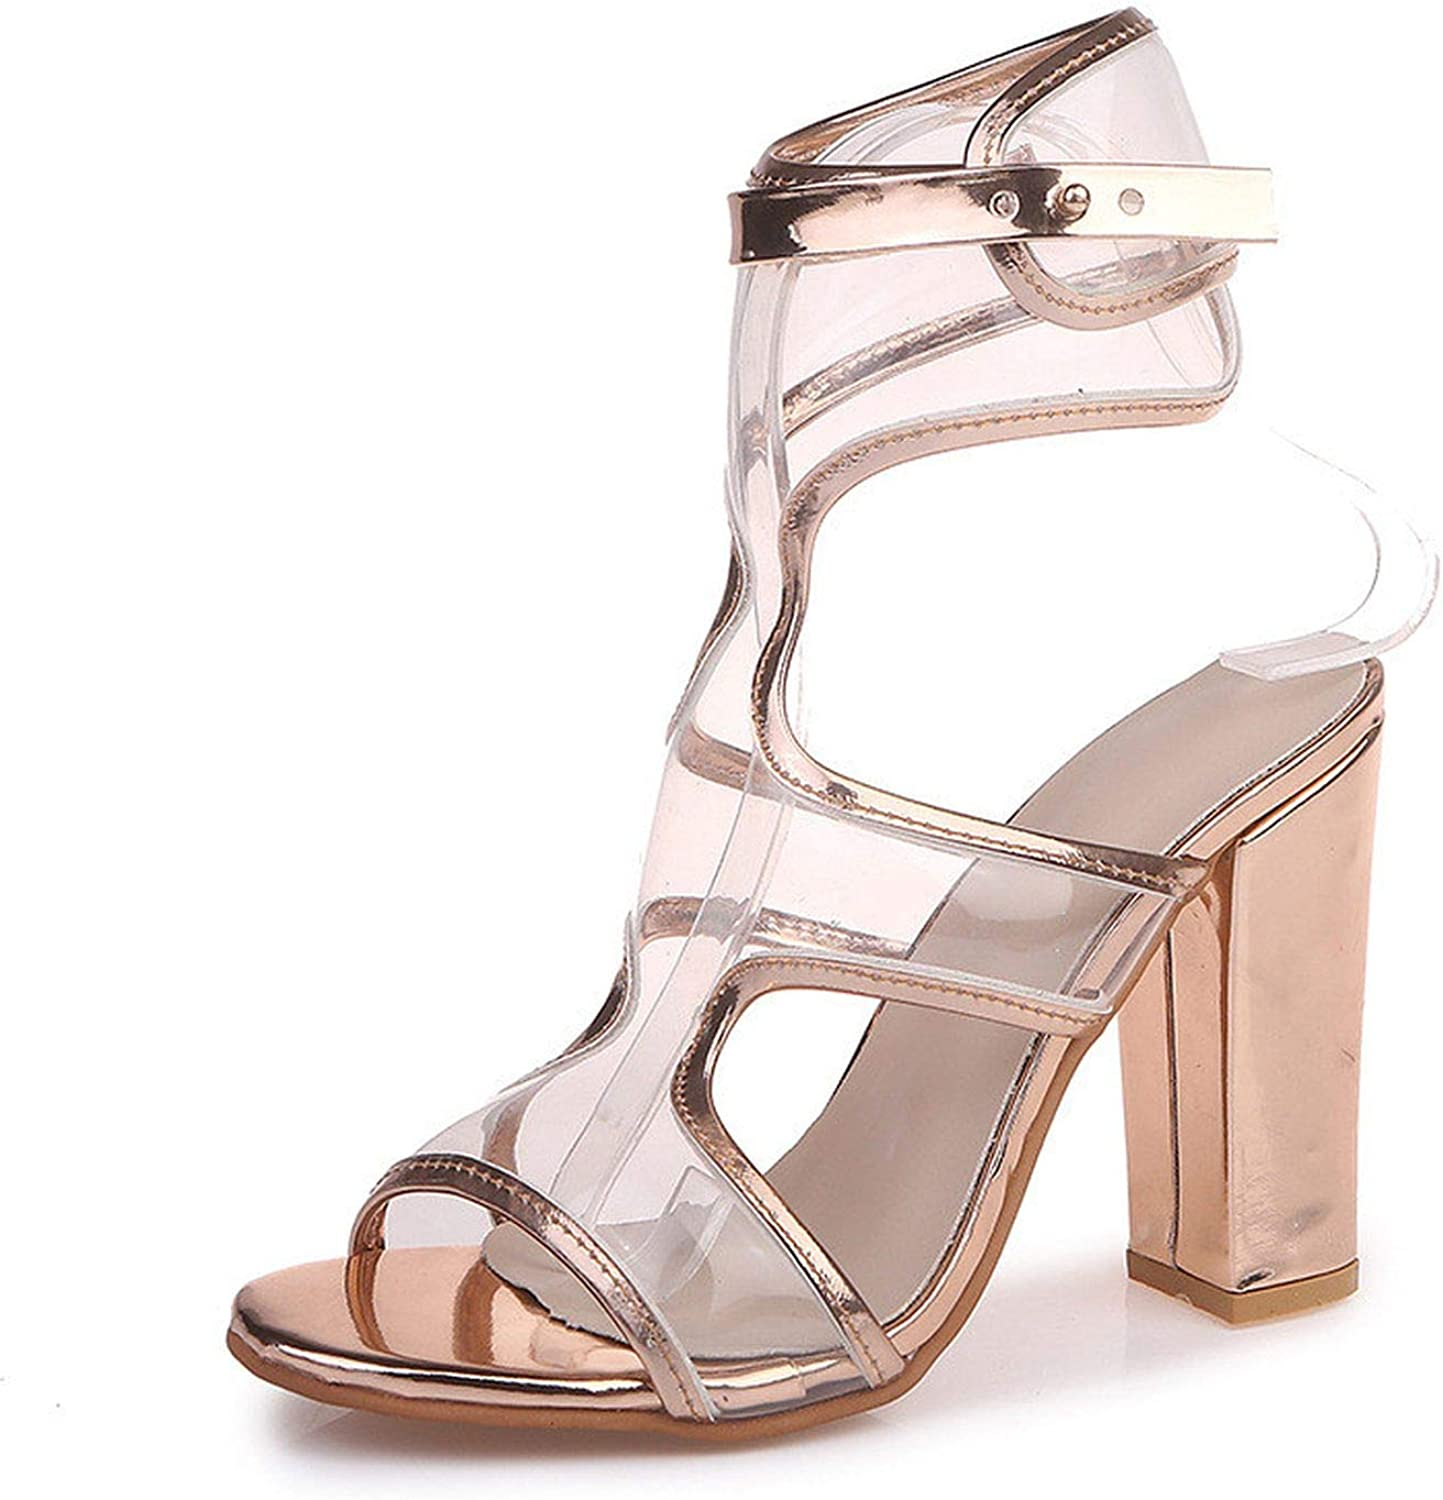 Ruoruo Woman Pumps High Chunry Heels Open Toe Buckle Strap Transparent Party Wedding Sandals Ladies shoes